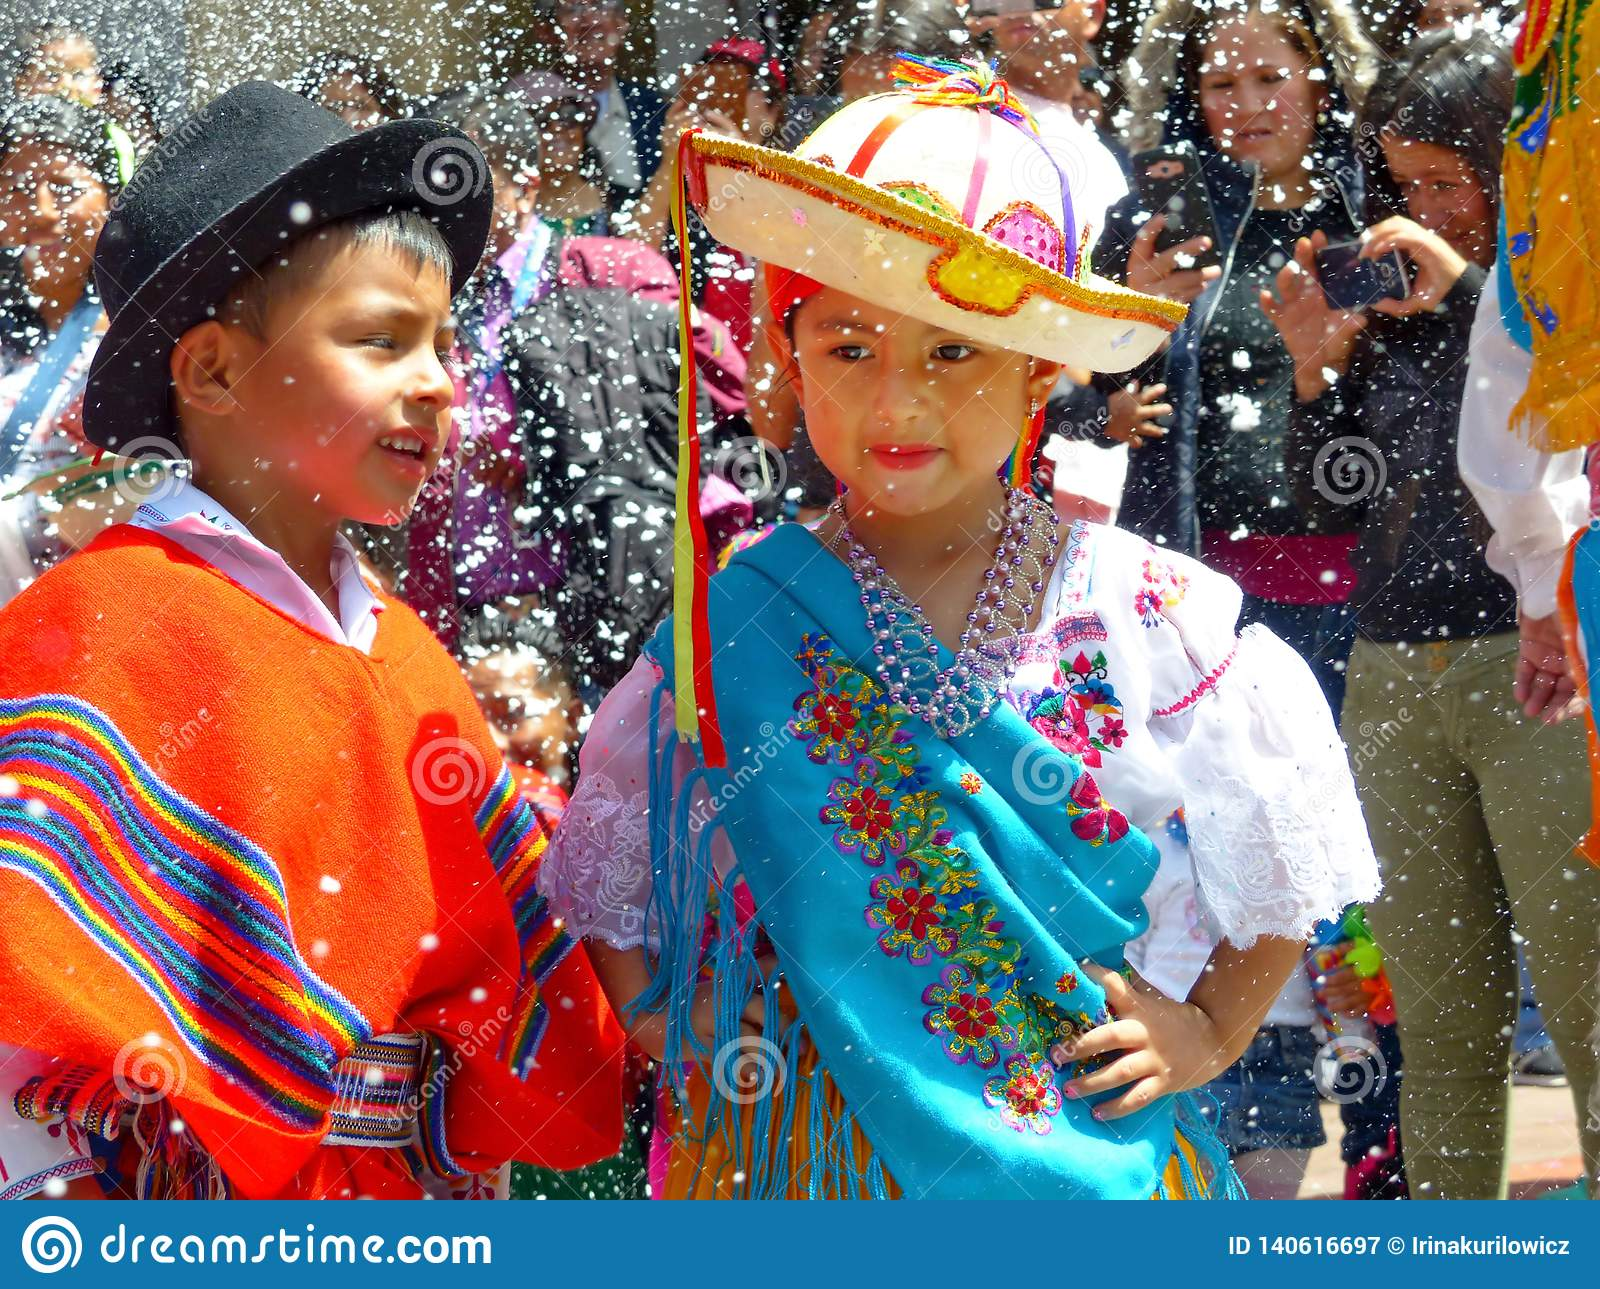 Childrens dressed in typical costumes of Ecuador dancing at the parade.